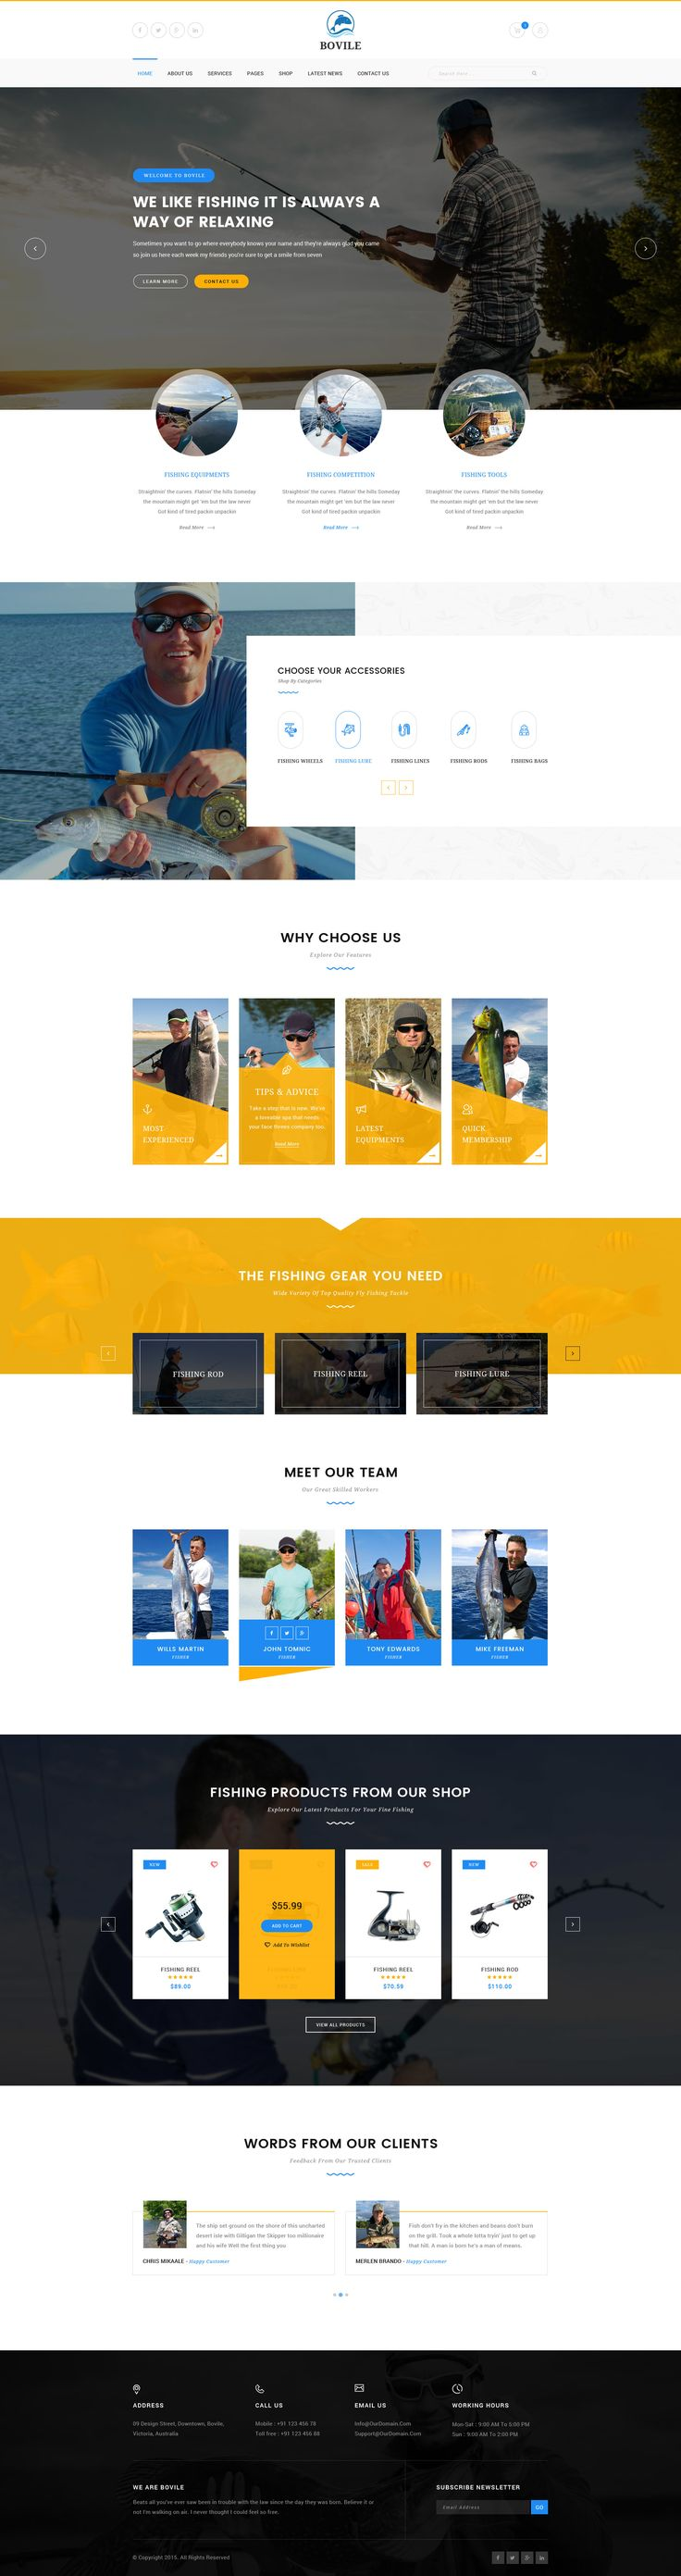 Features   11 PSD File Included Fully Customizable Pixel Perfect Well-organised   Pages  01-Home.psd 02-About-Us.psd 03-Services.psd 04-Gallery.psd 05-Gallery-Popup.psd 06-Pricing.psd 07-FAQ.psd 08...